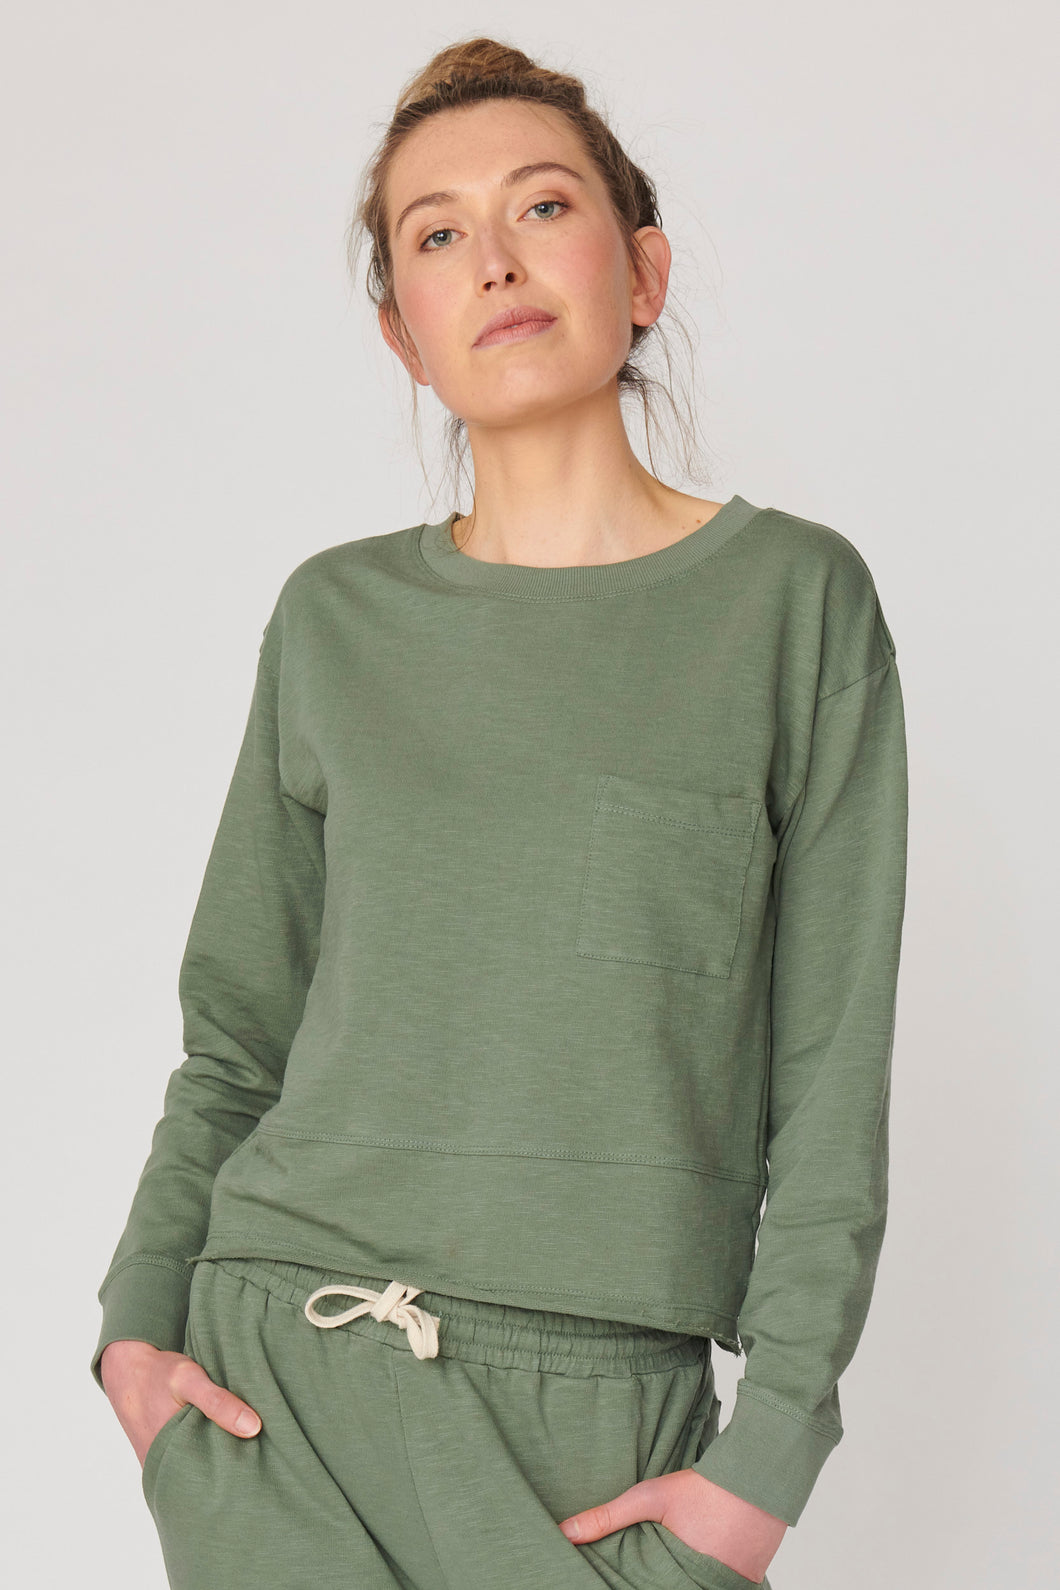 New Jersey Jumper New Jersey Sweater LULU ORGANIC COTTON SWEATER BASIC STATE AUSTRALIA